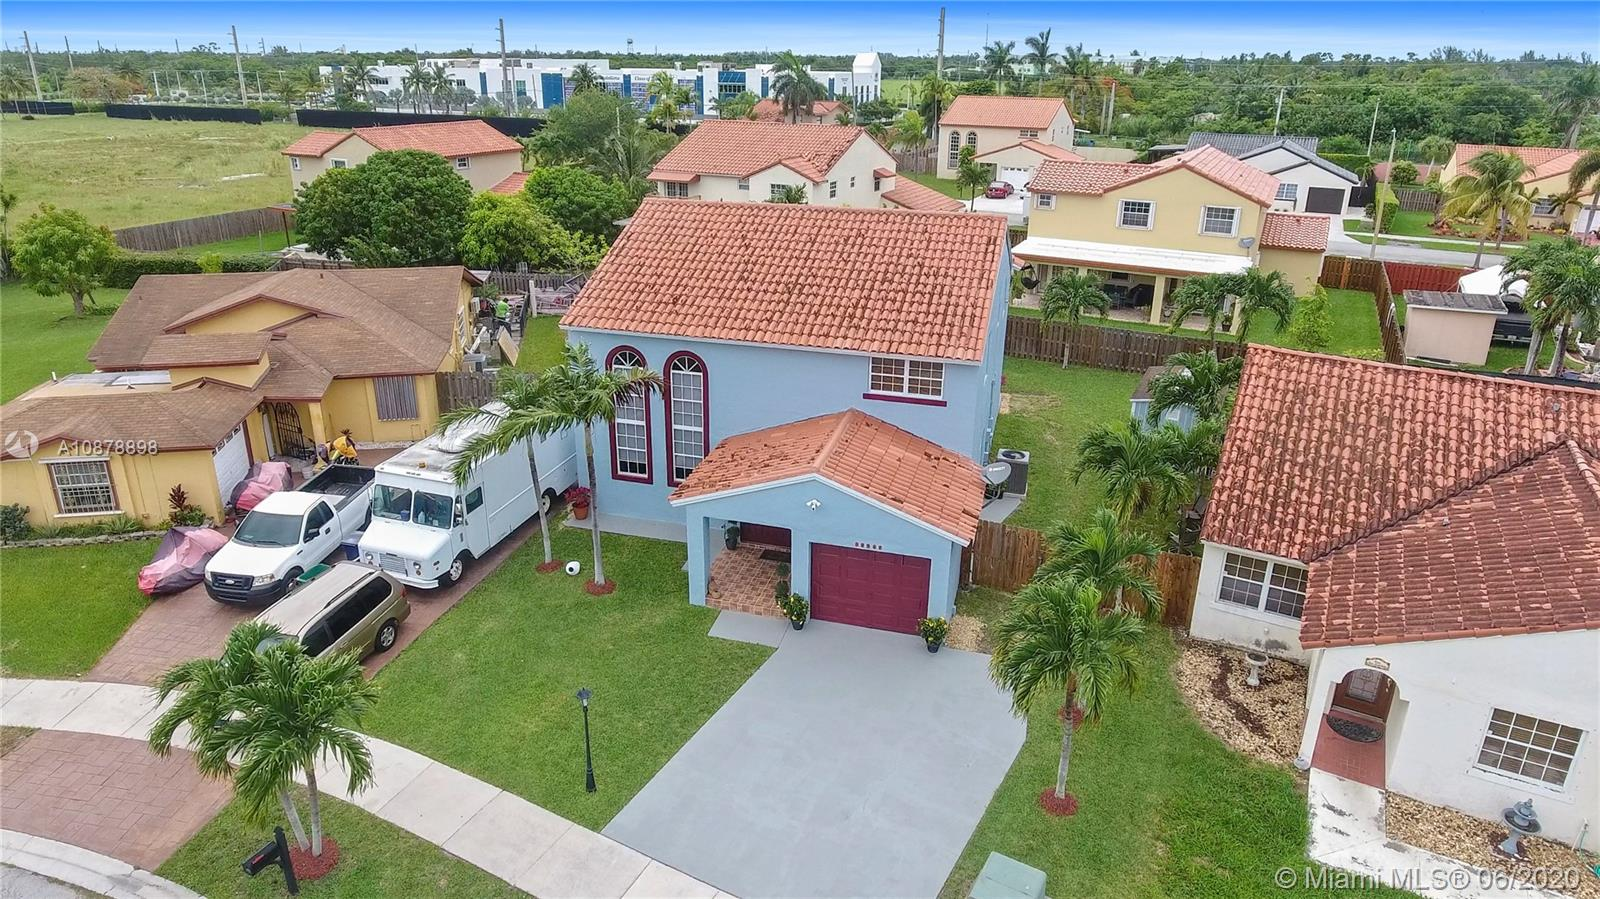 12367 SW 250th St Property Photo